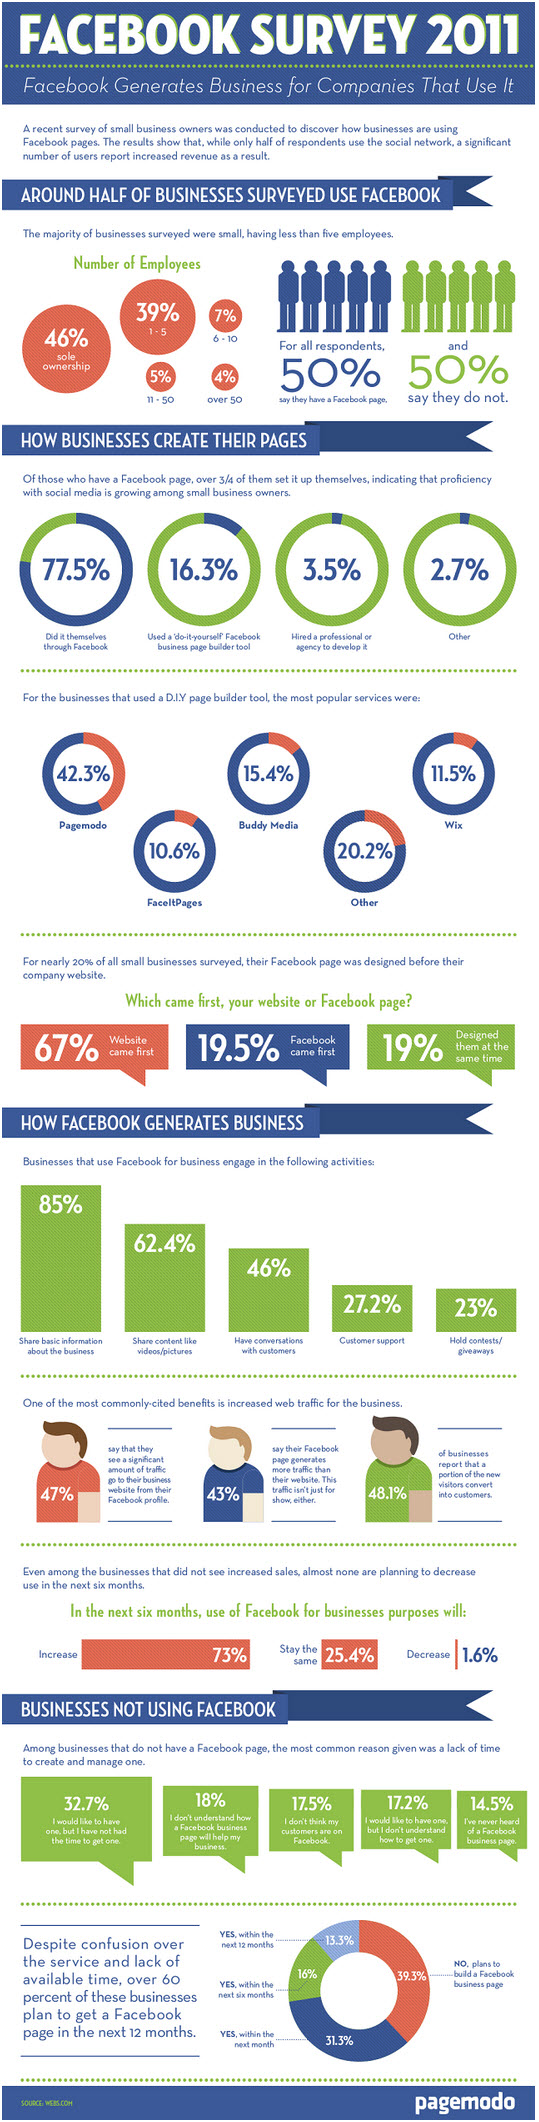 How Facebook Generates Business for Companies that Use It